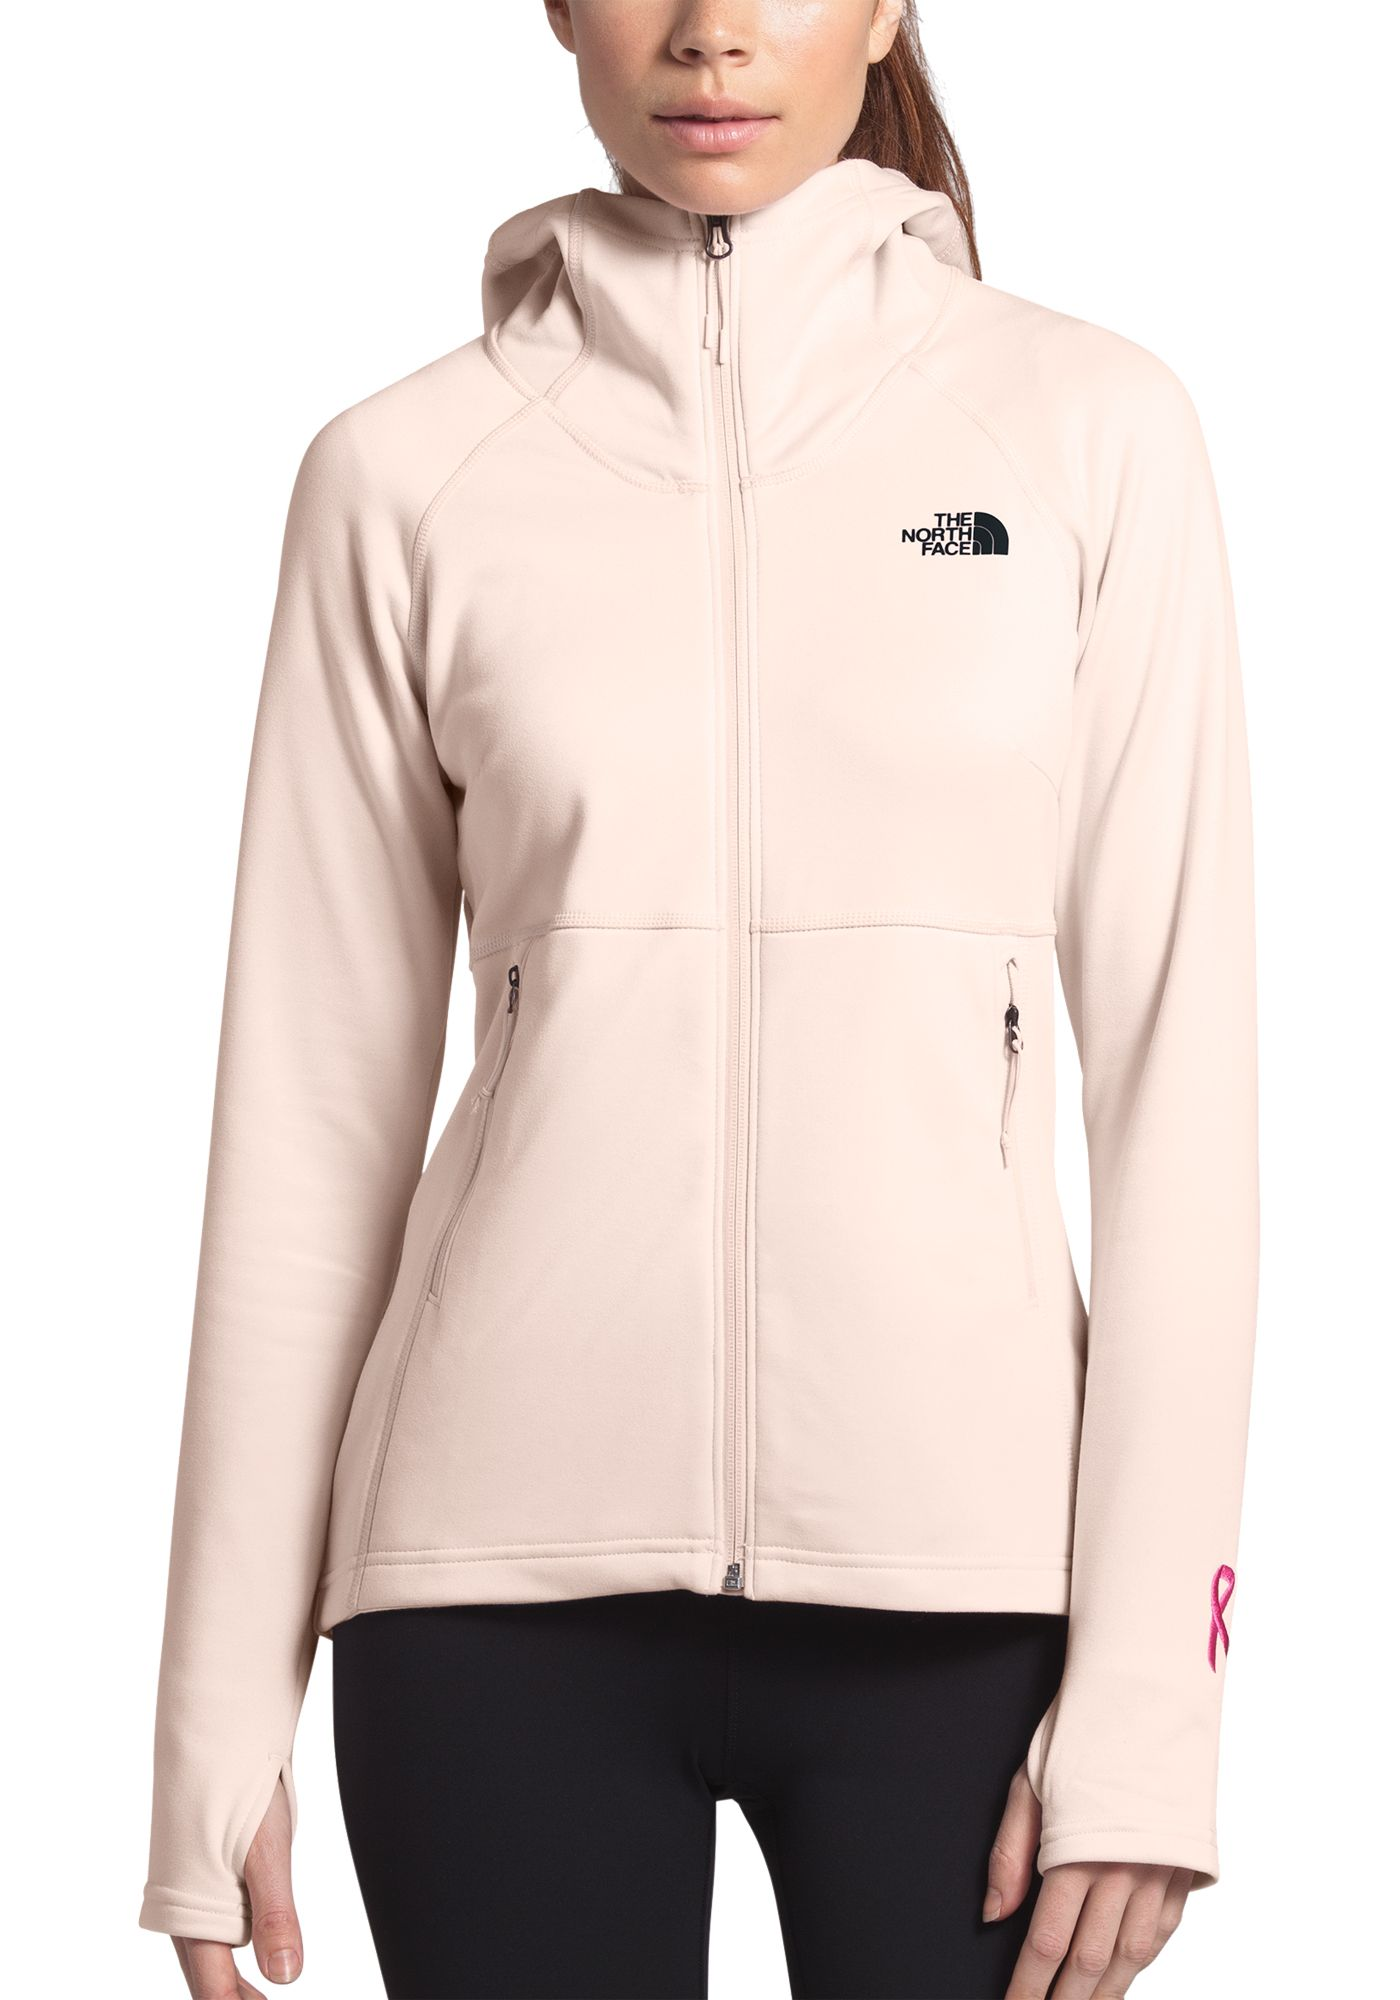 The North Face Women's Canyonlands Full Zip Hoodie